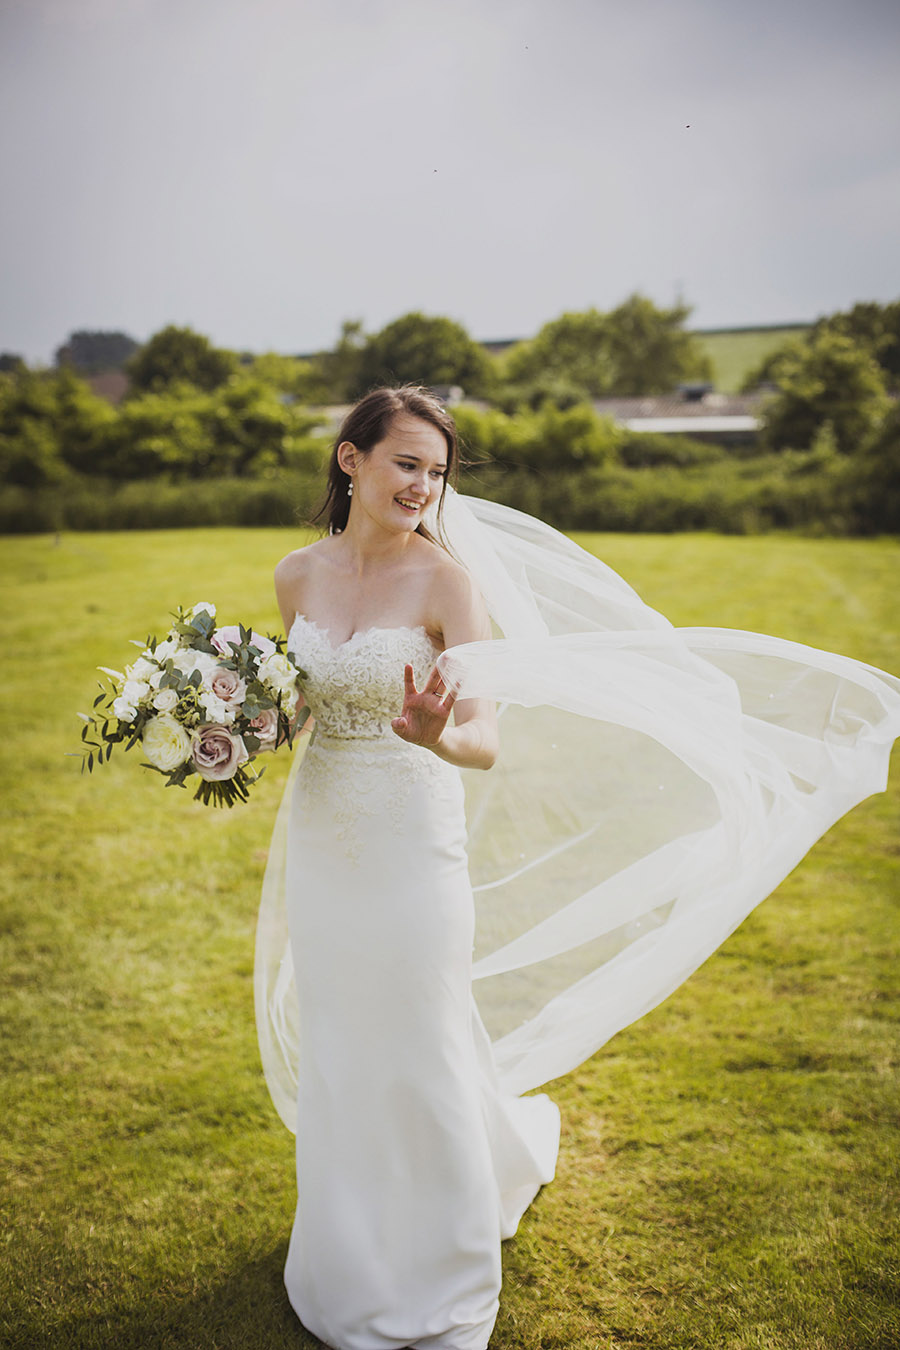 Relaxed outdoor wedding at Cott Farm Barn with images by Heather Birnie Photography on the English Wedding Blog (29)